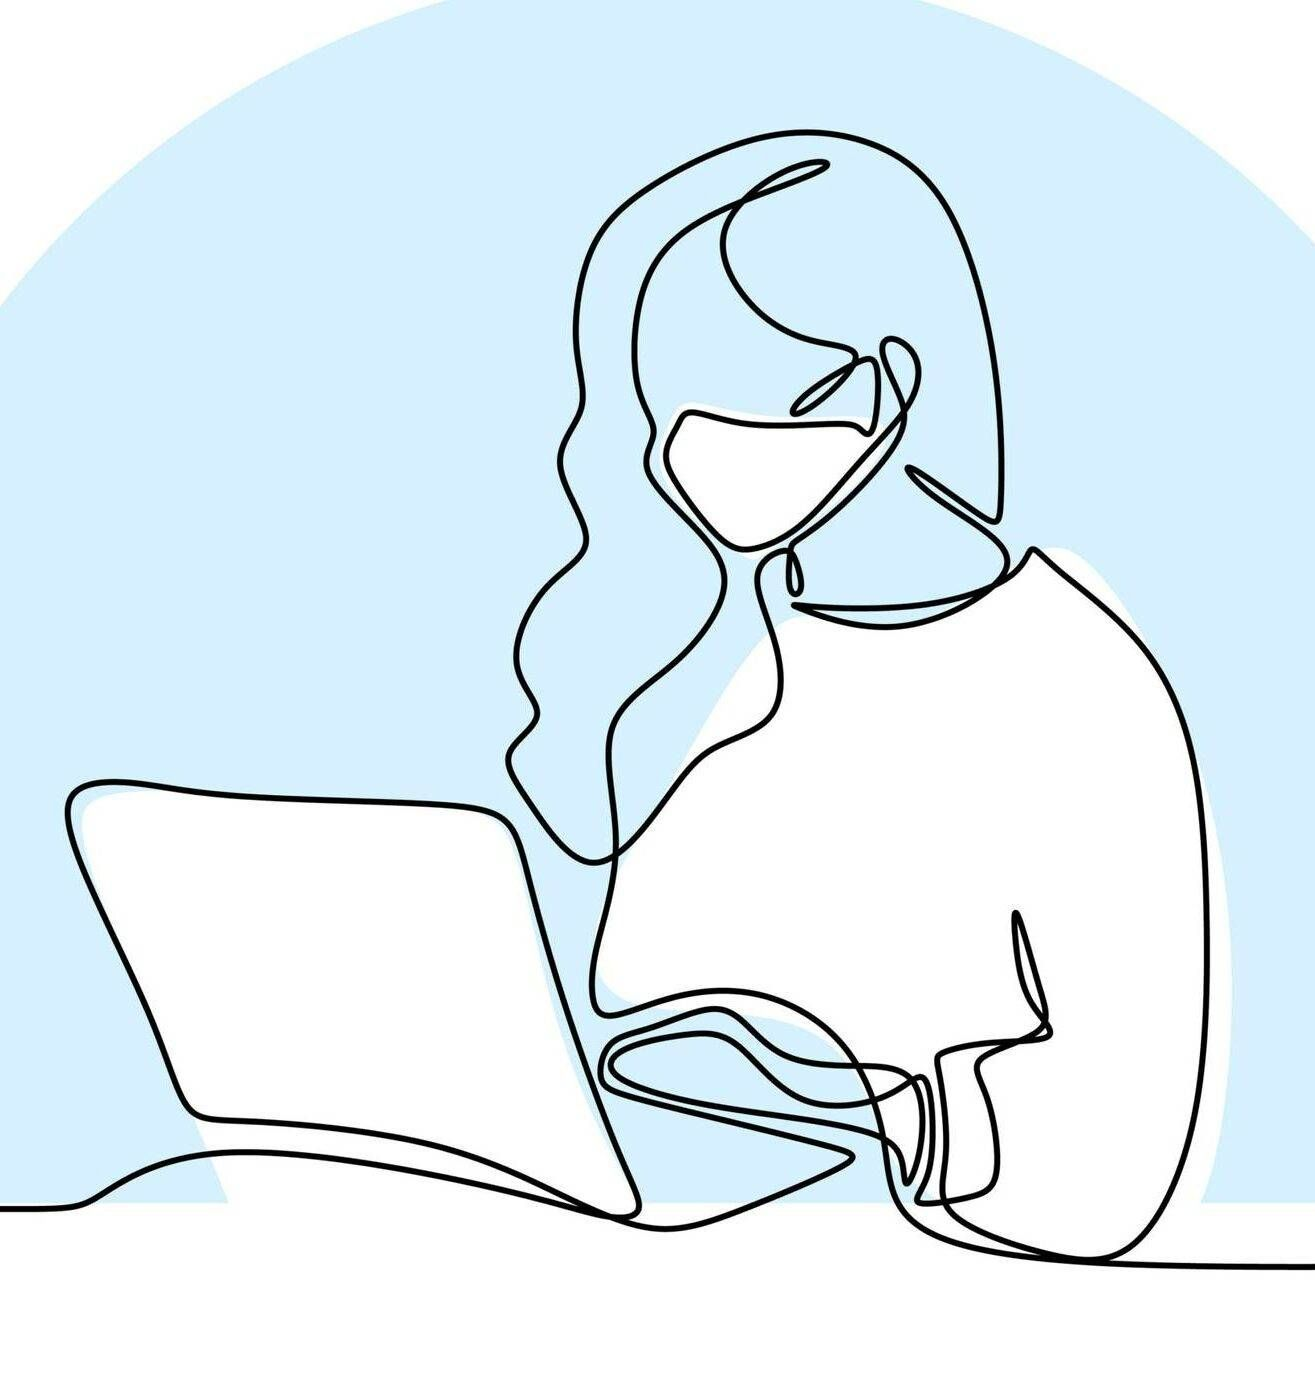 Illustration of young woman with mask on looking at an open laptop screen, college grads, Rewire, young job seekers